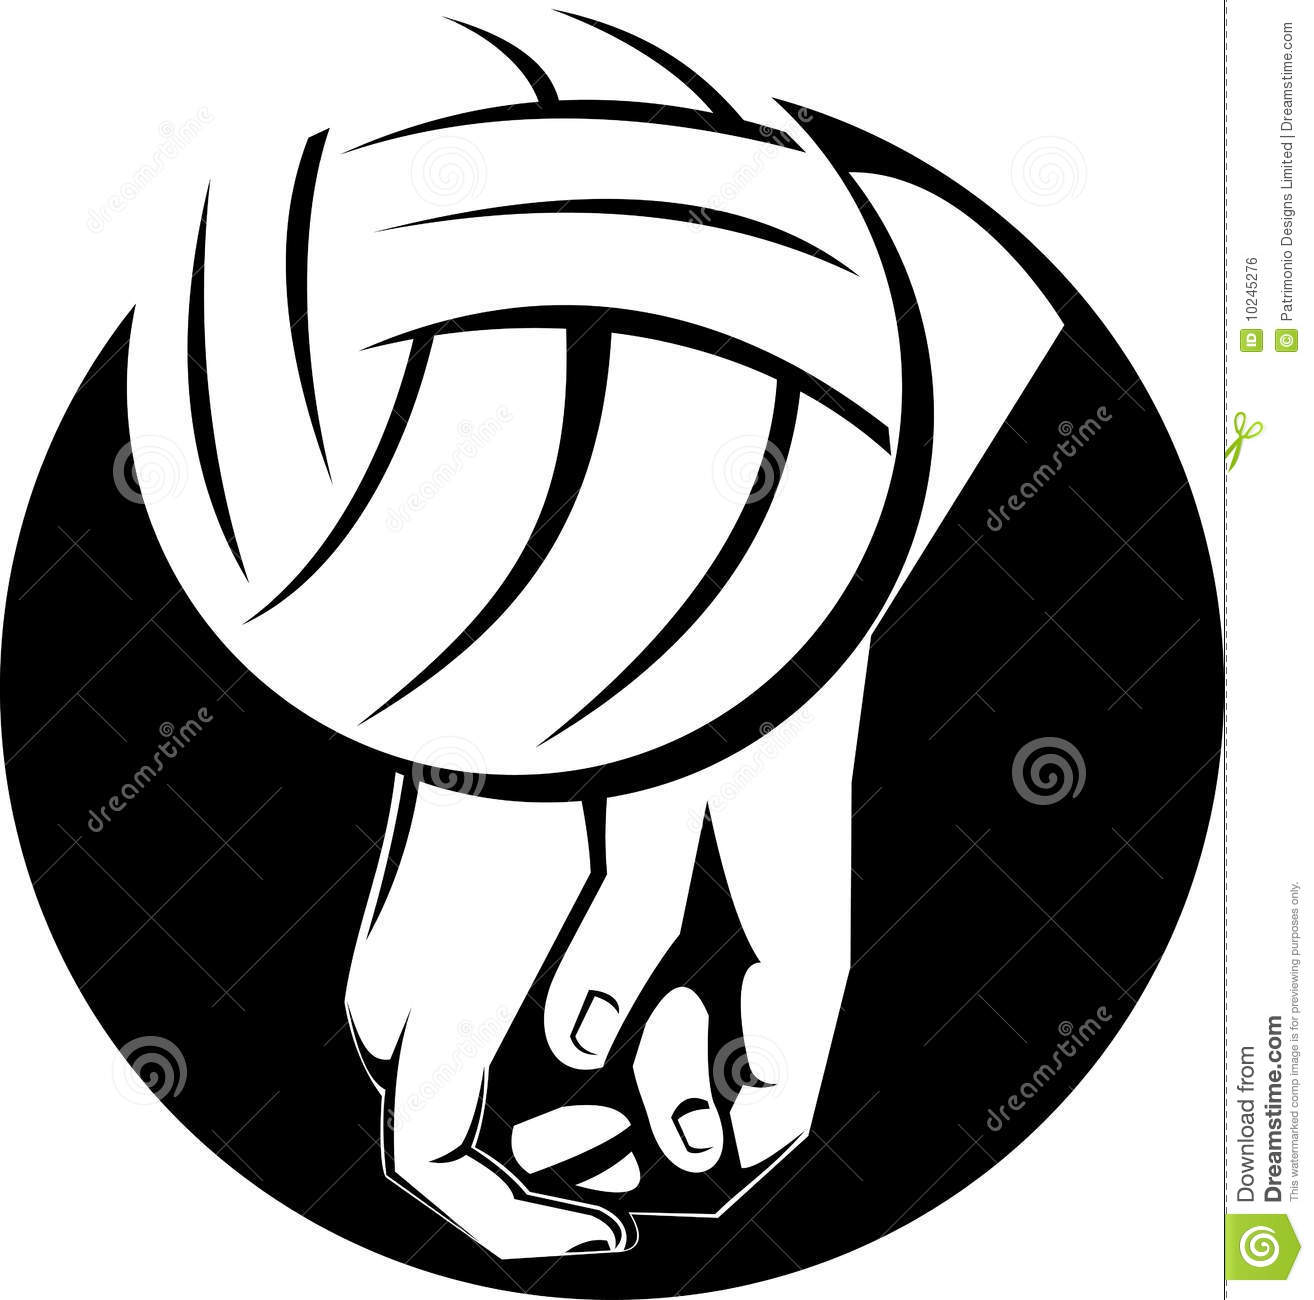 volleyball spike clipart - photo #43